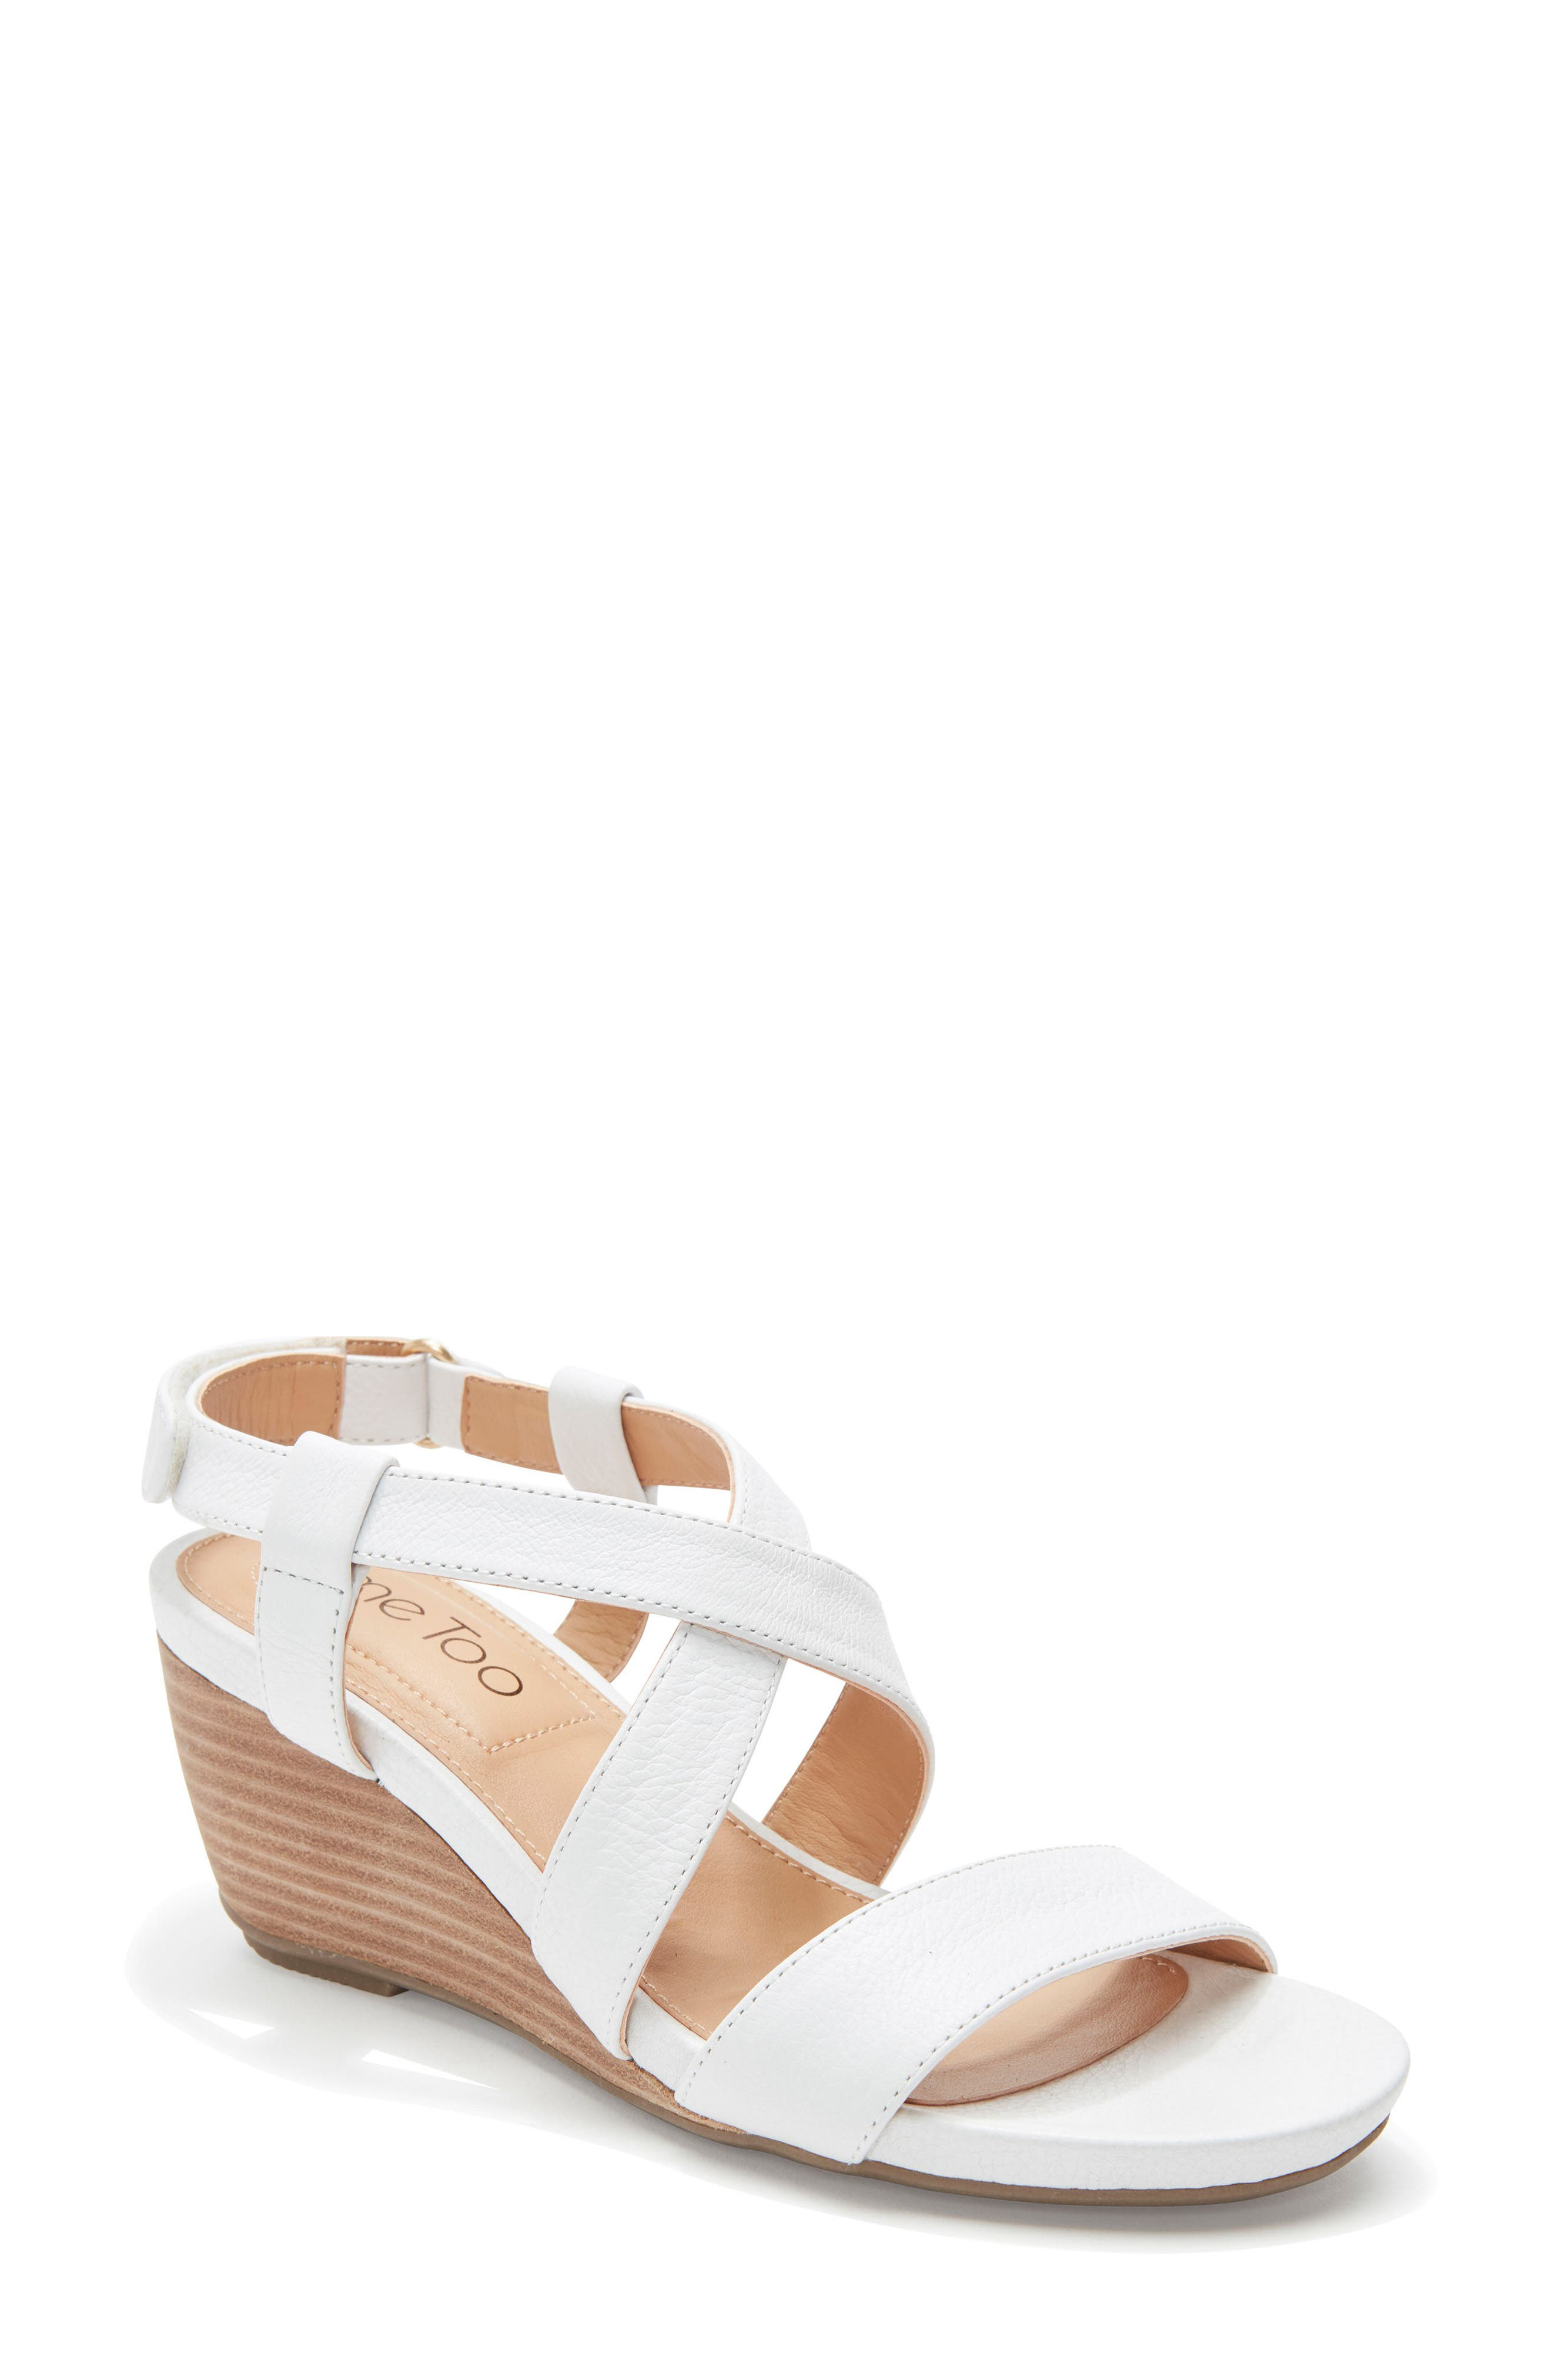 Payton Strappy Wedge,                         Main,                         color, White Leather